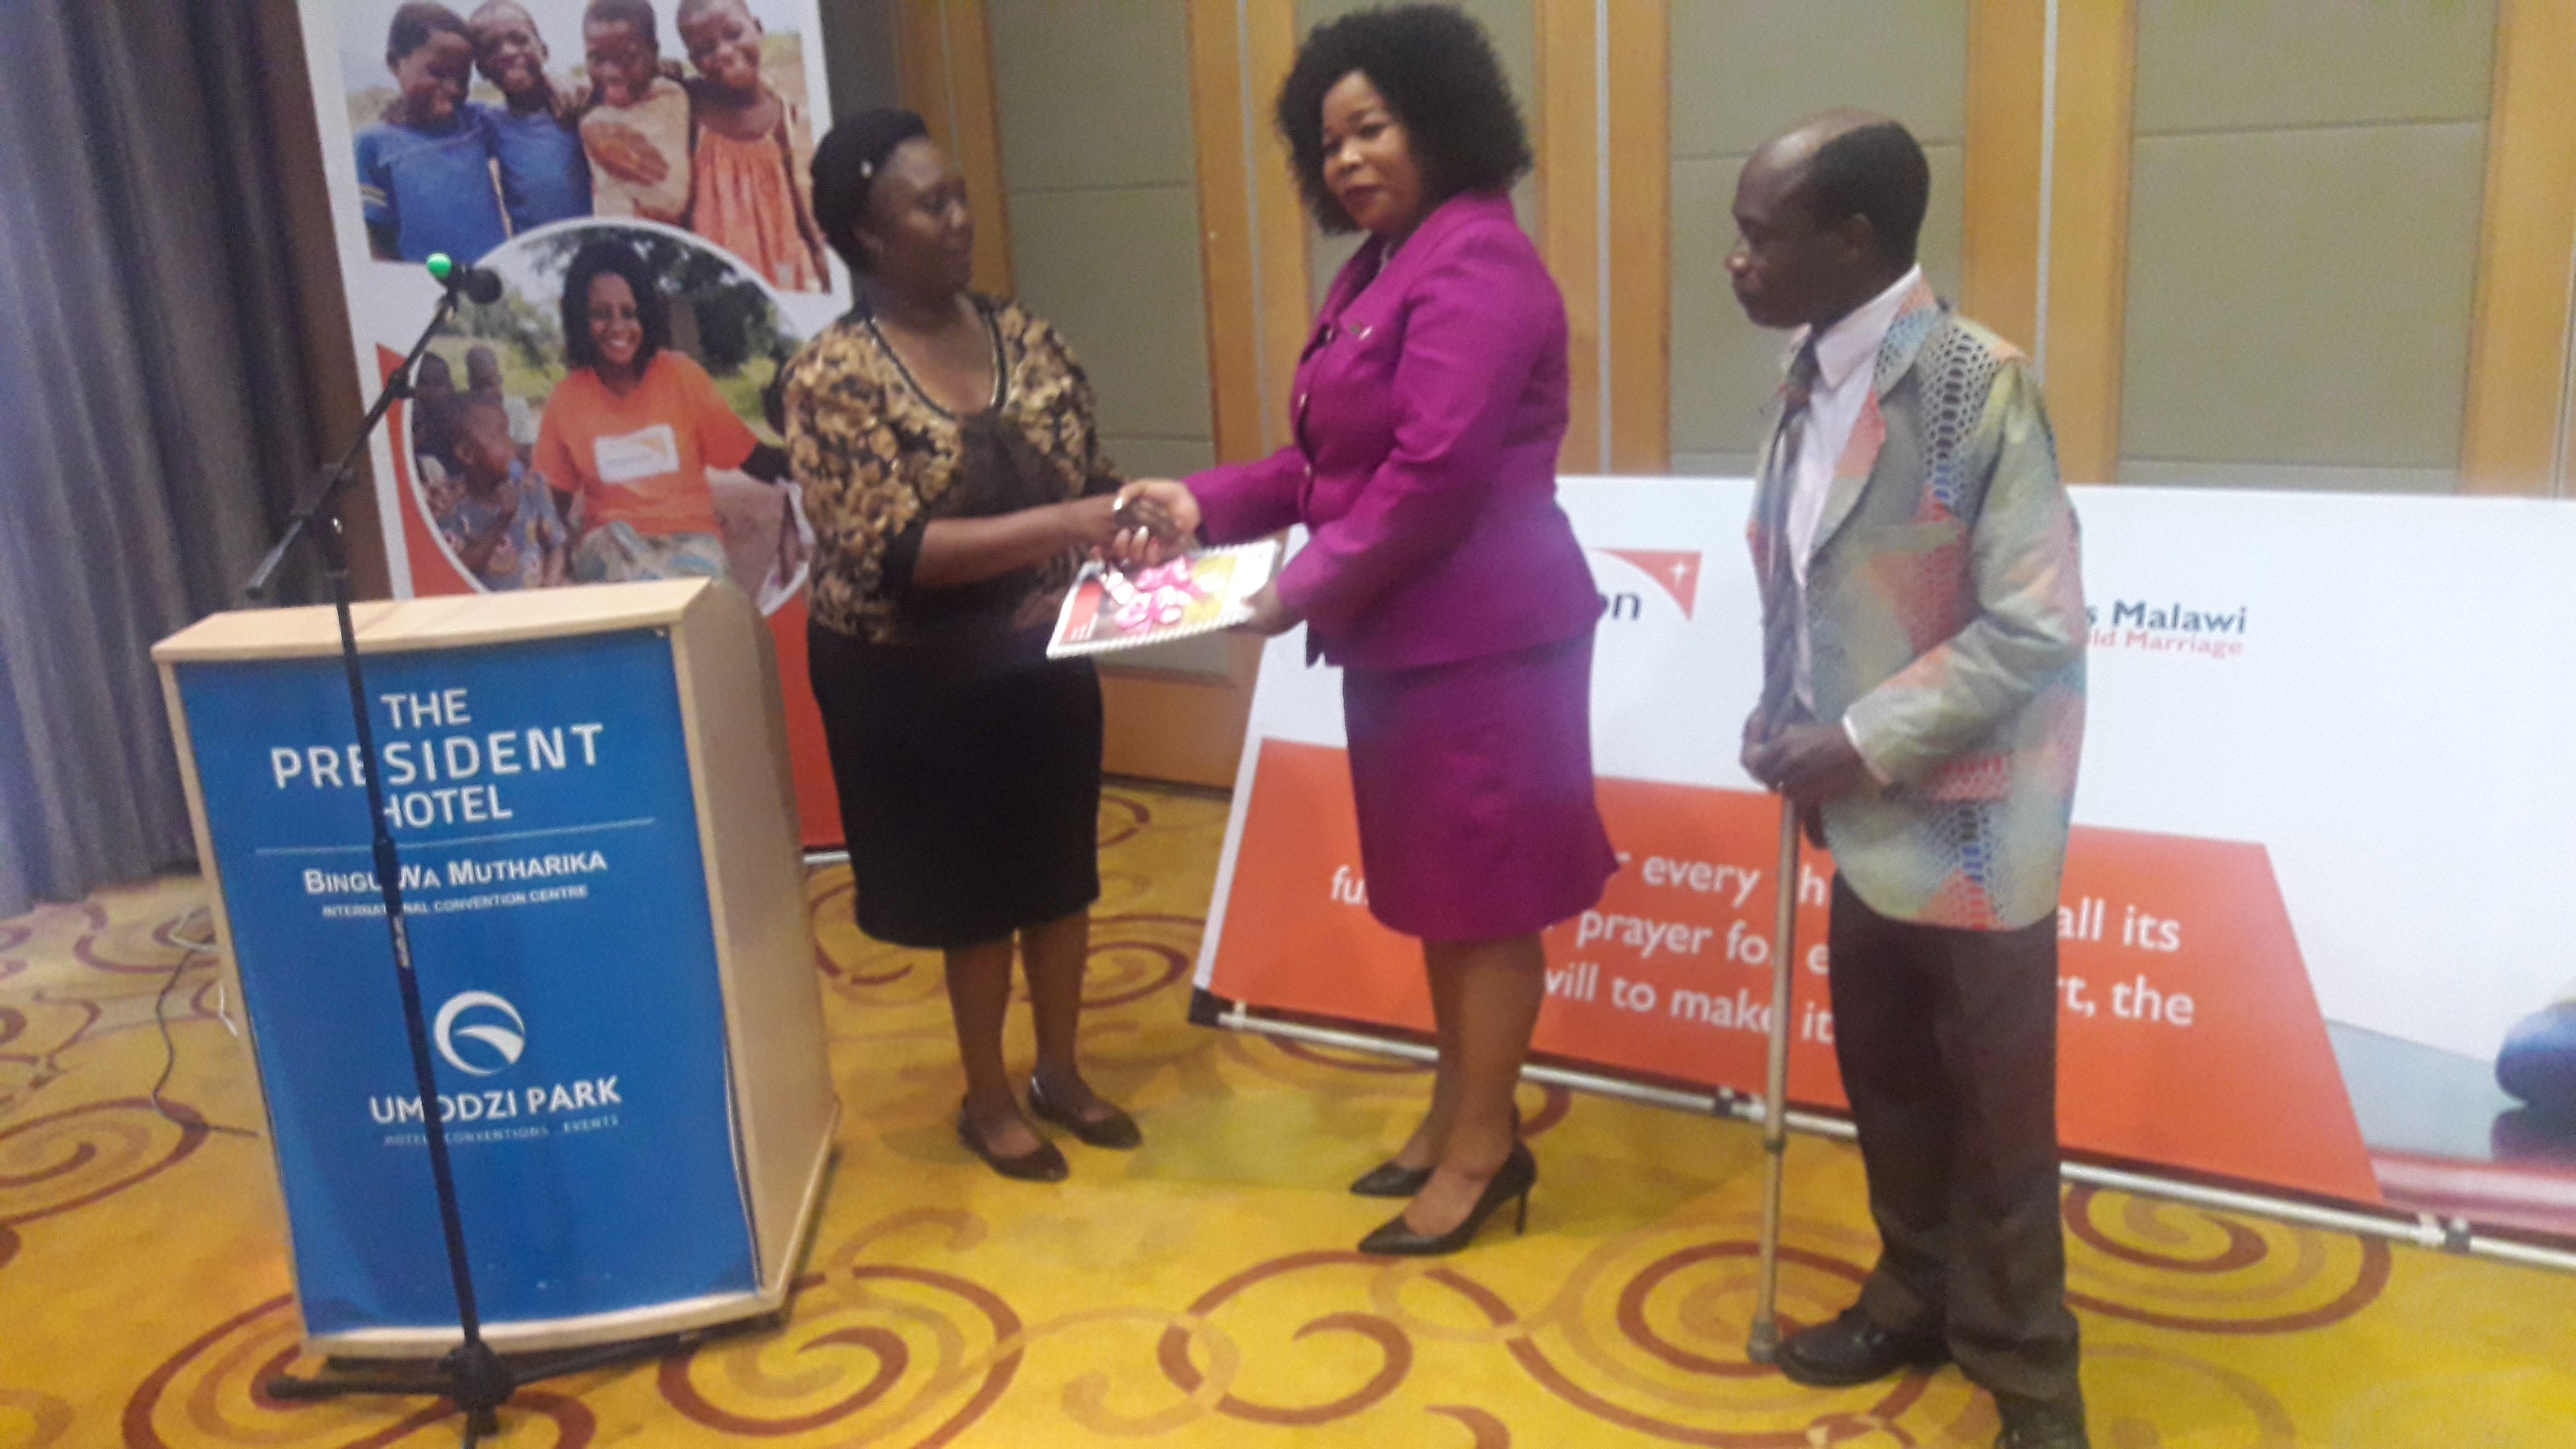 Child rights report says Malawi lacks structures and services for children welfare